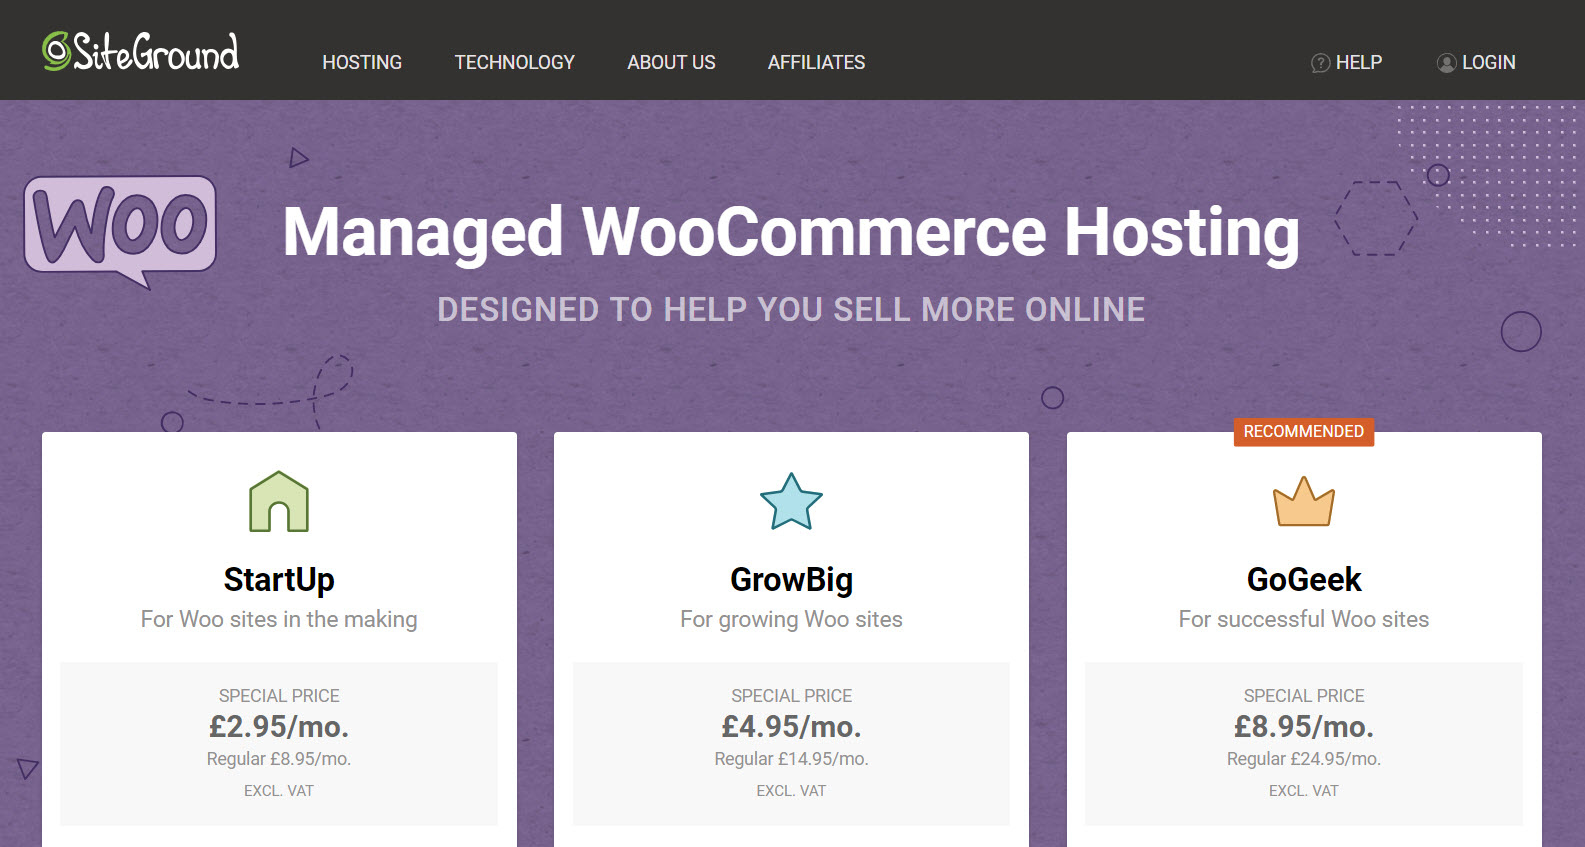 Hosting is an important part of eCommerce security